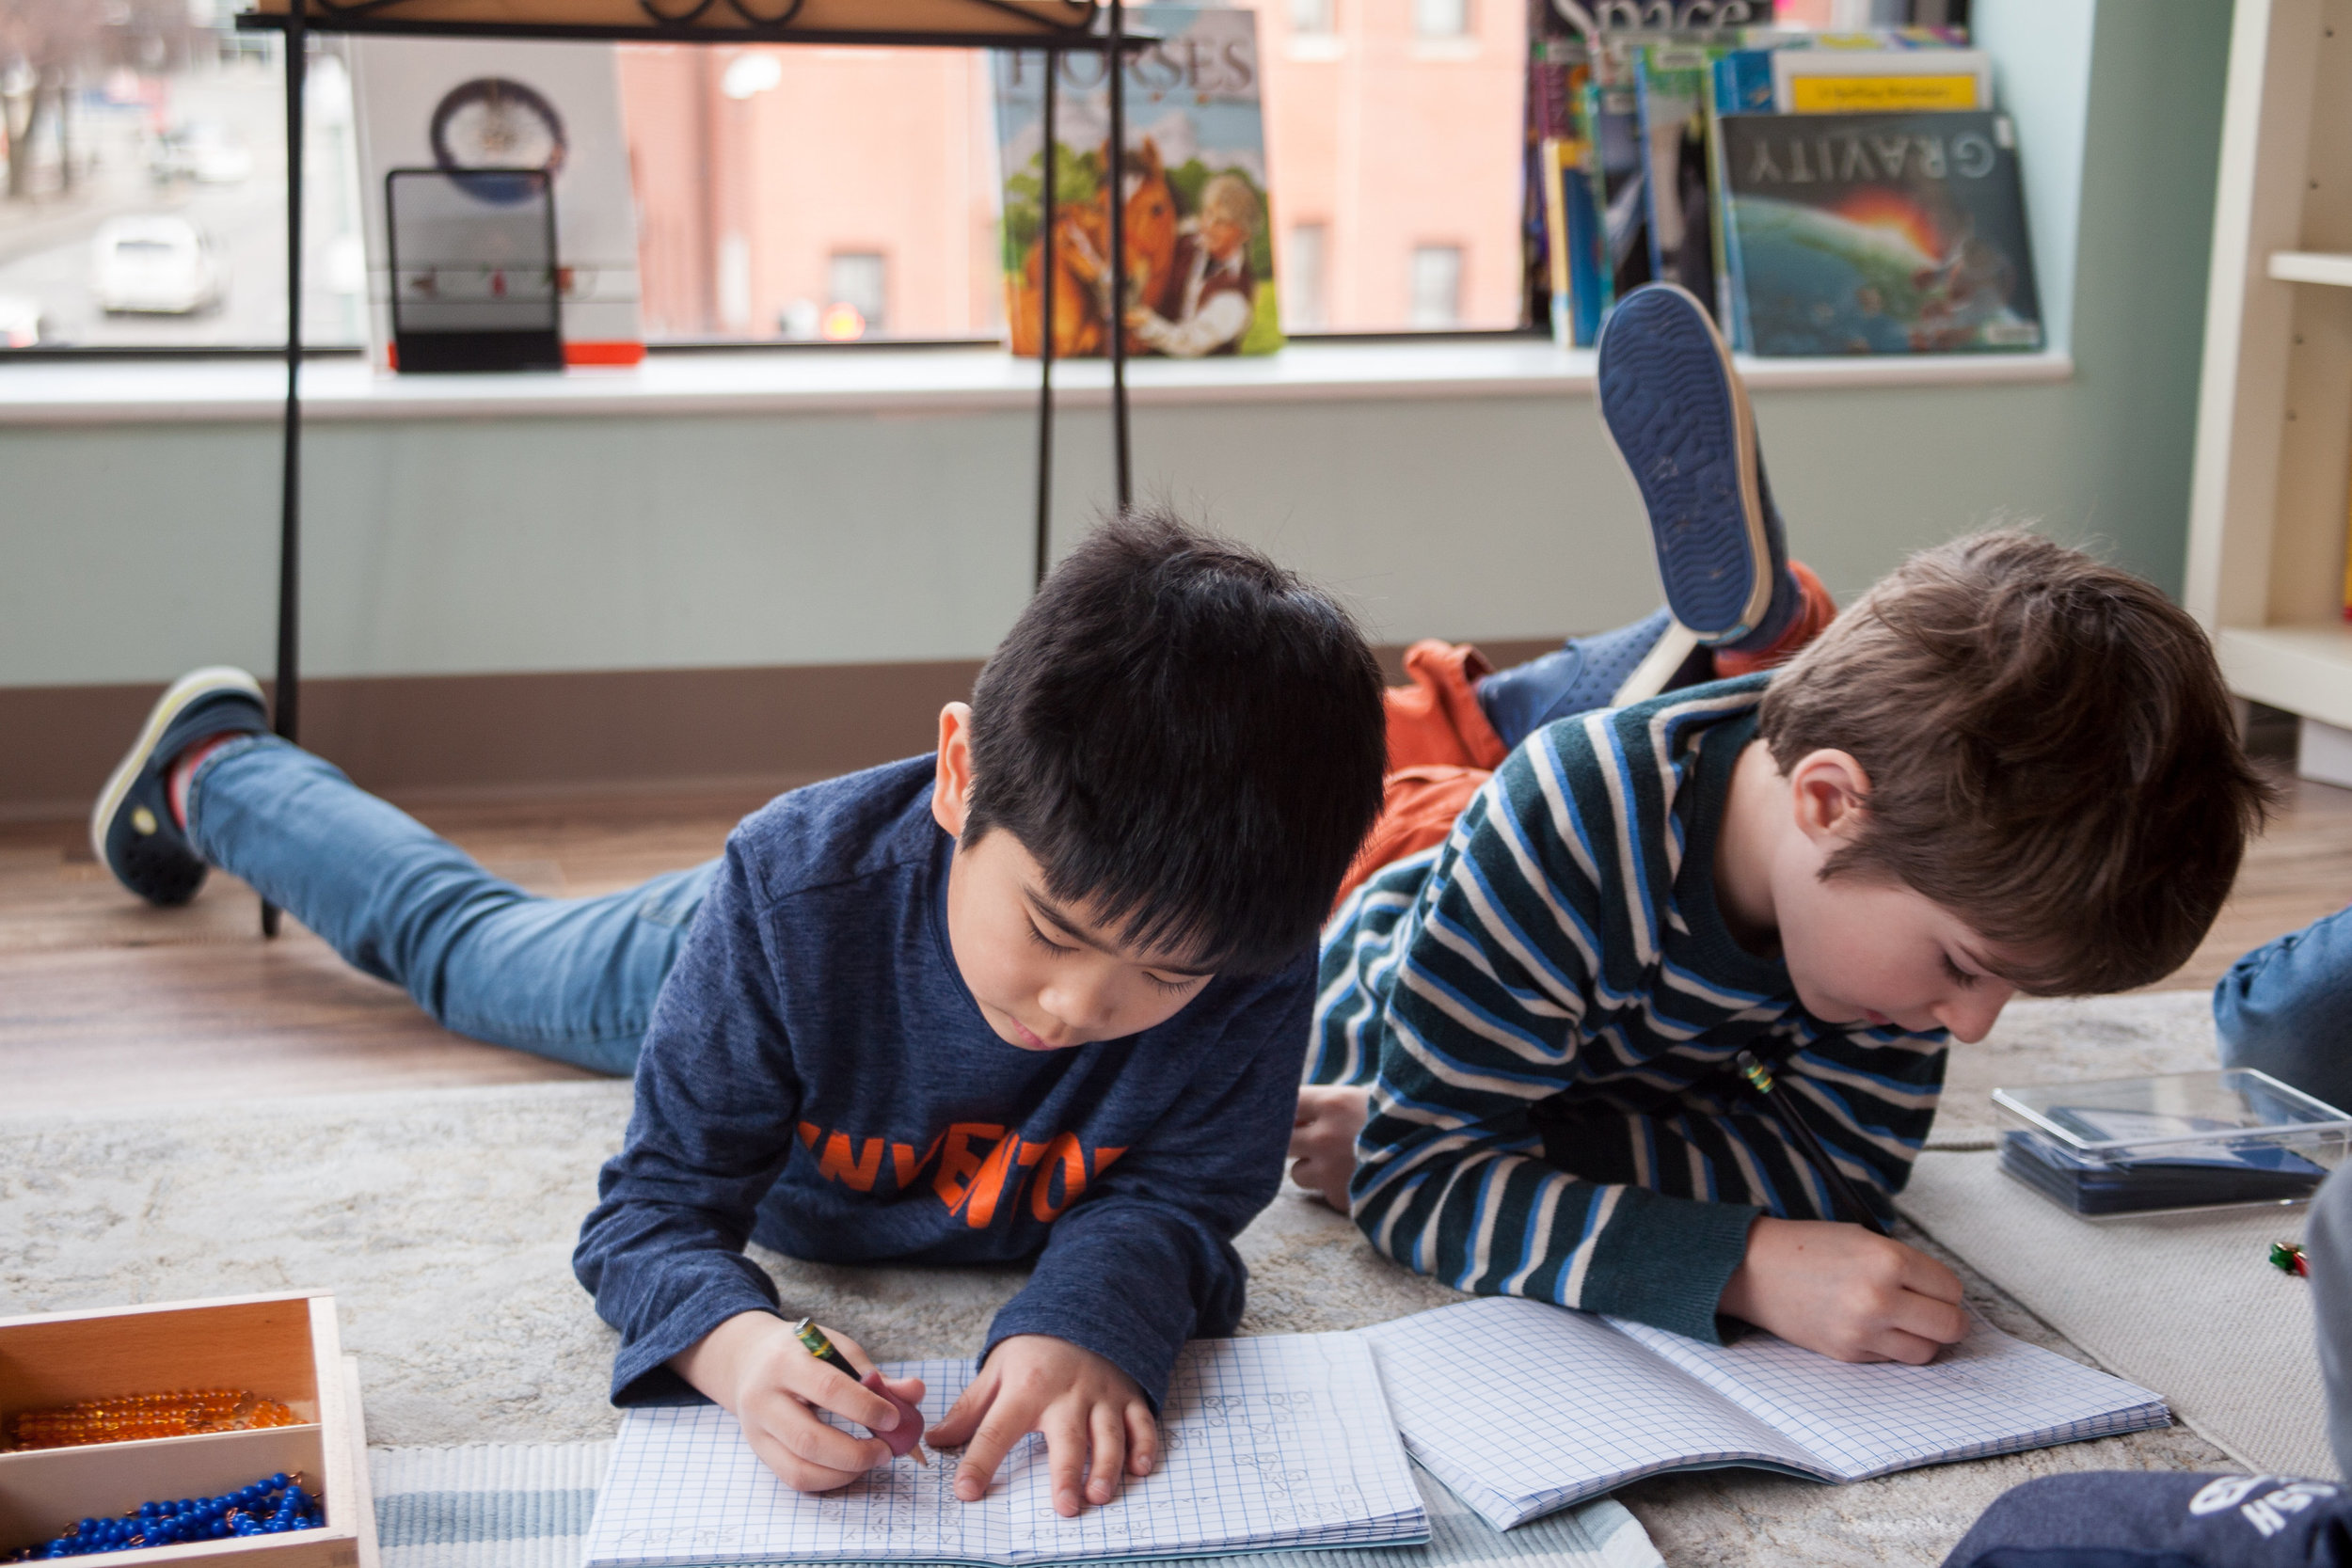 Our student enjoy learning in     mixed-age classes    , which allow for self-paced learning with close attention and guidance from teachers and peer support.